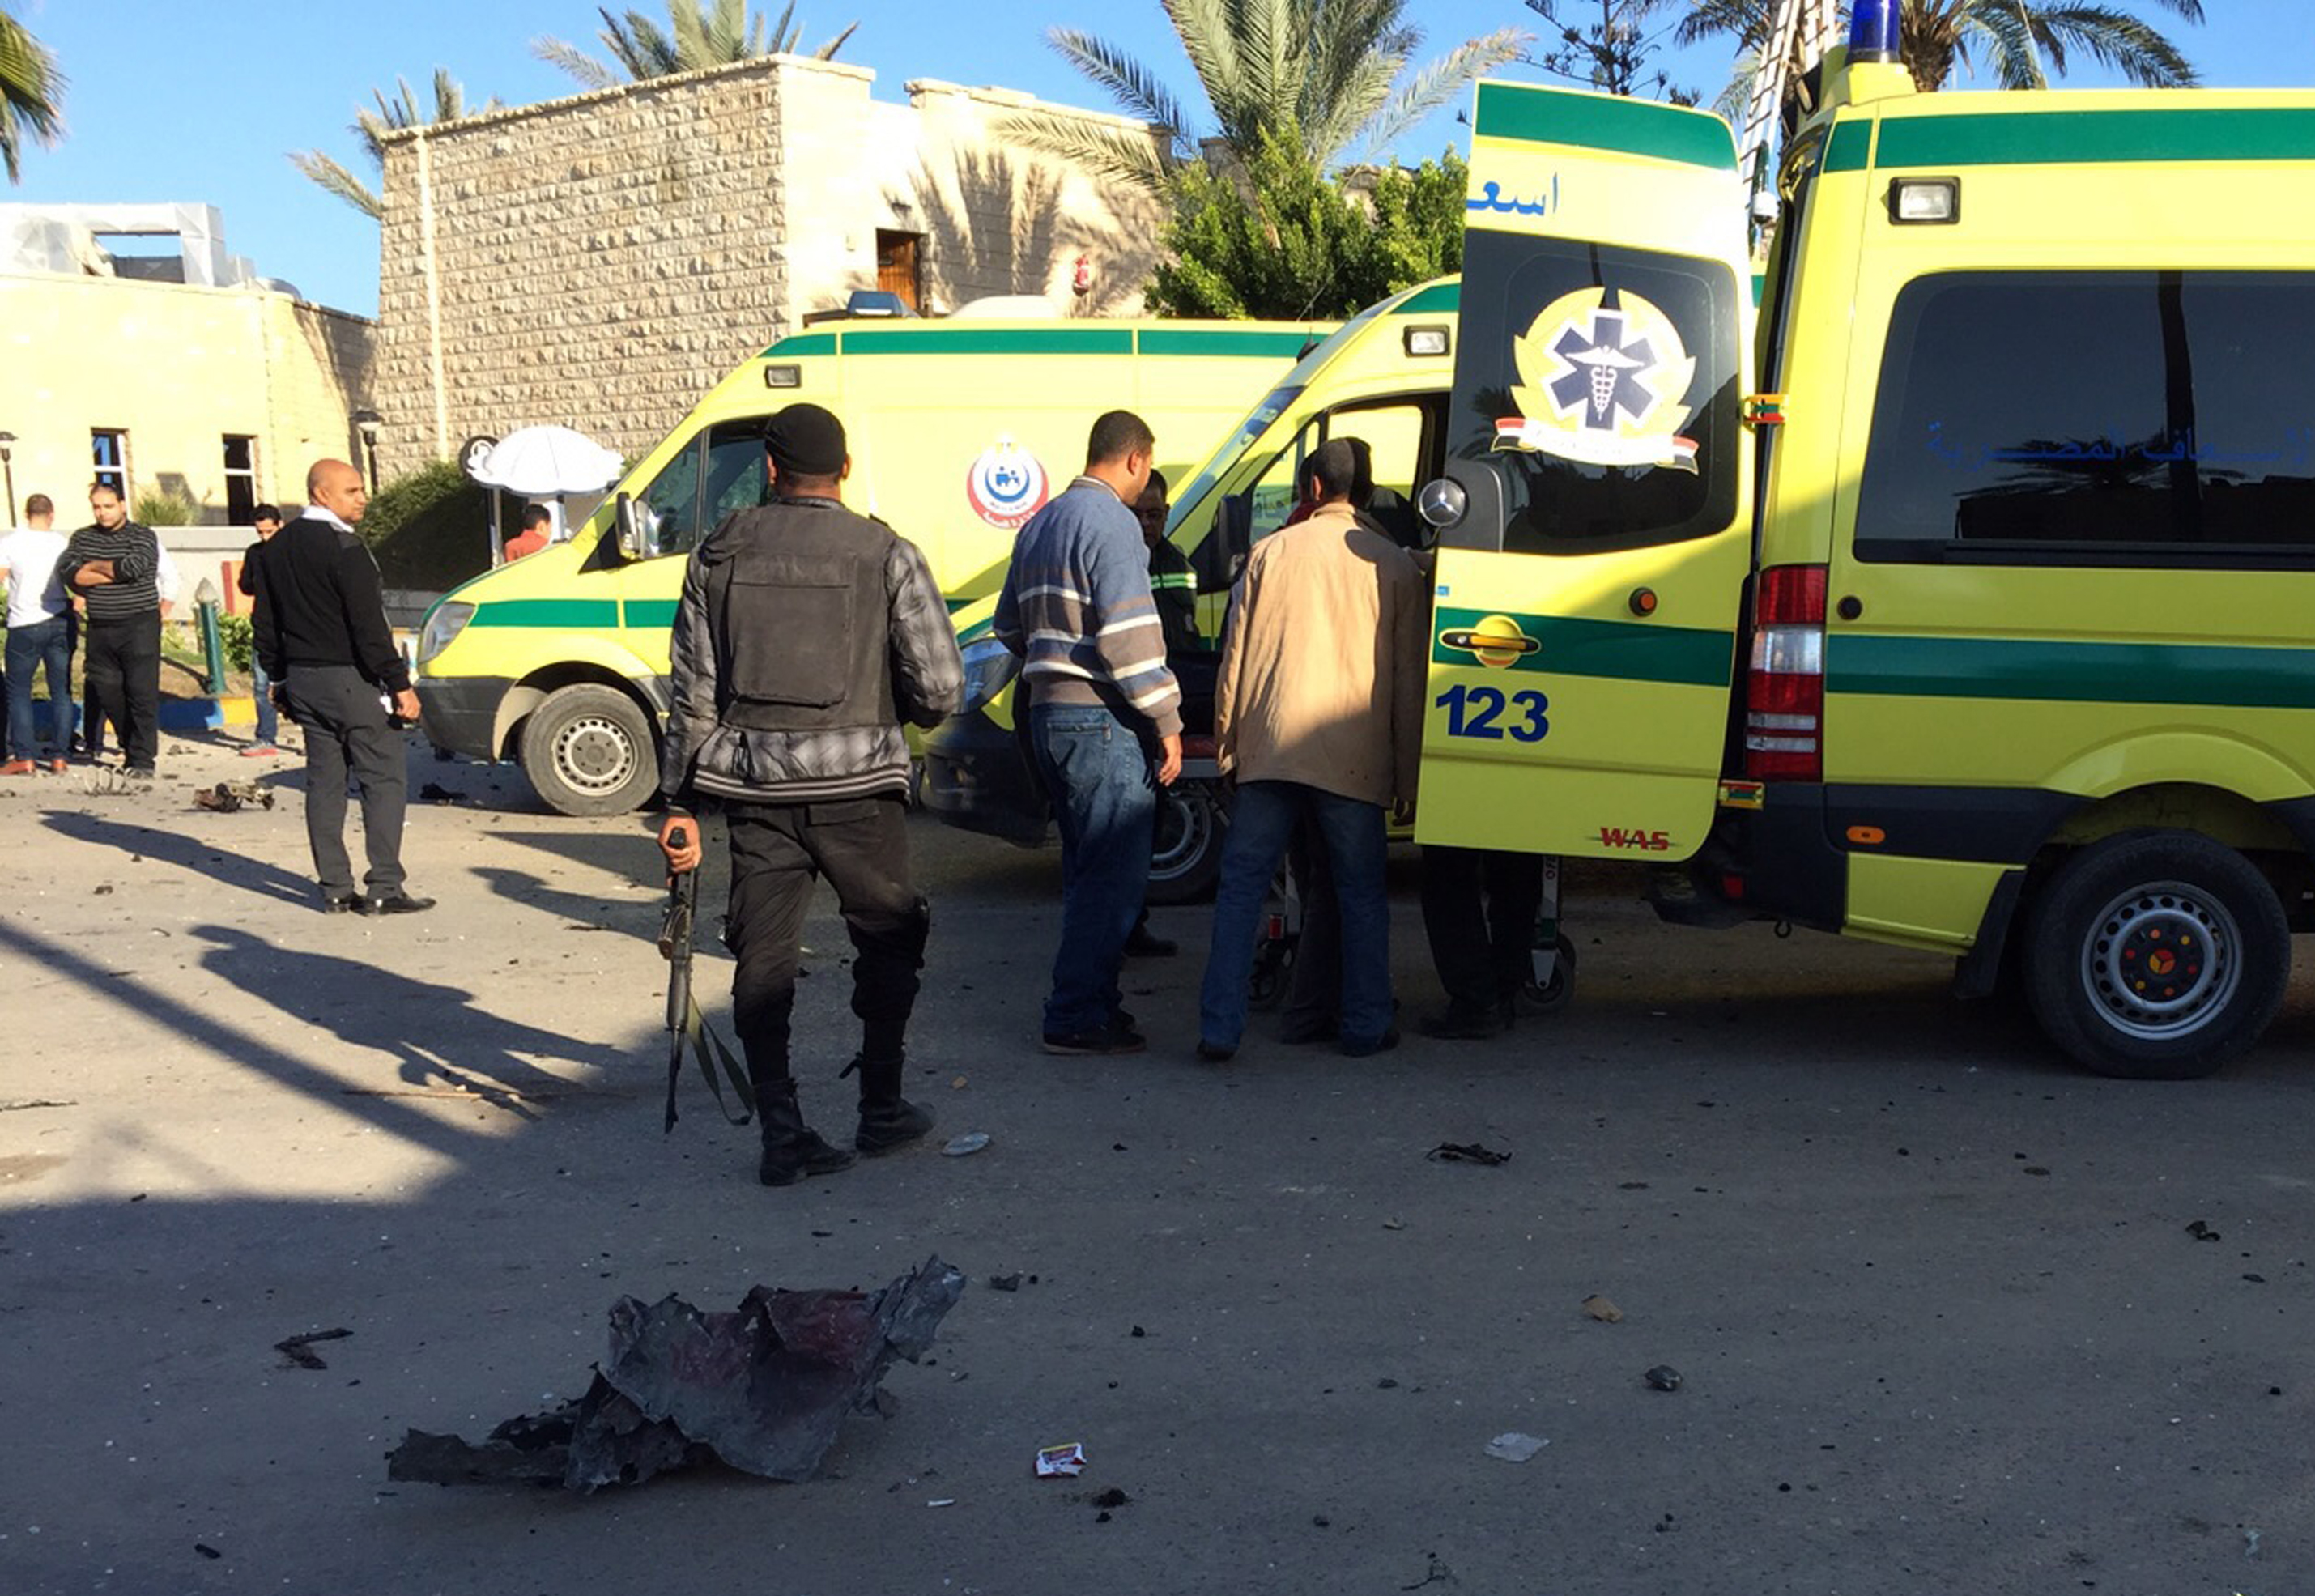 Emergency personnel and security forces stand next to ambulances outside the Swiss Inn hotel in the Egyptian town of El-Arish, in the Sinai peninsula, following an attack on the hotel Nov. 24, 2015.